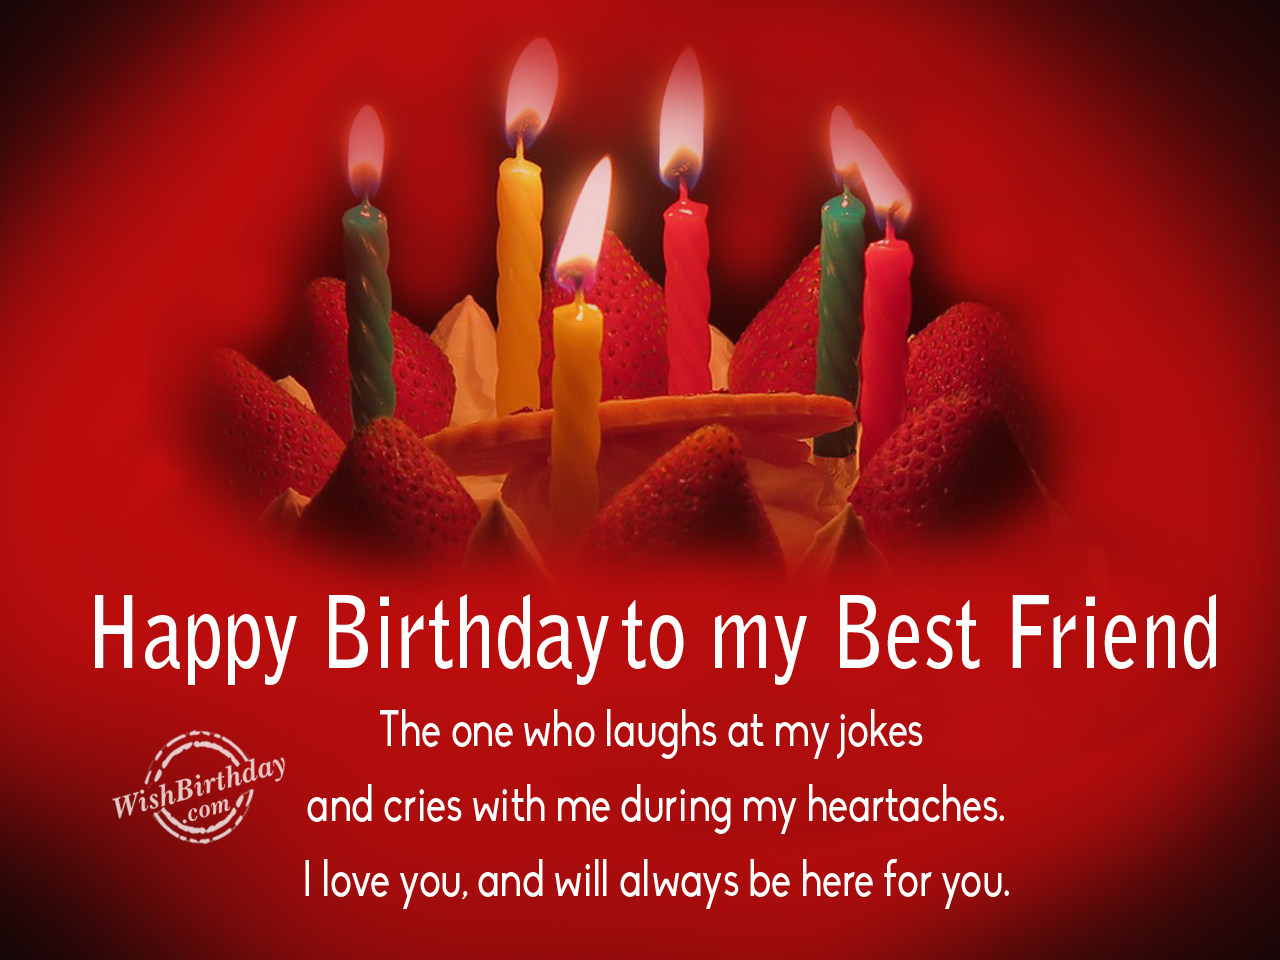 Birthday wishes for best friend birthday images pictures happy birthday to my best friendthe one who laughs at my jokes kristyandbryce Gallery